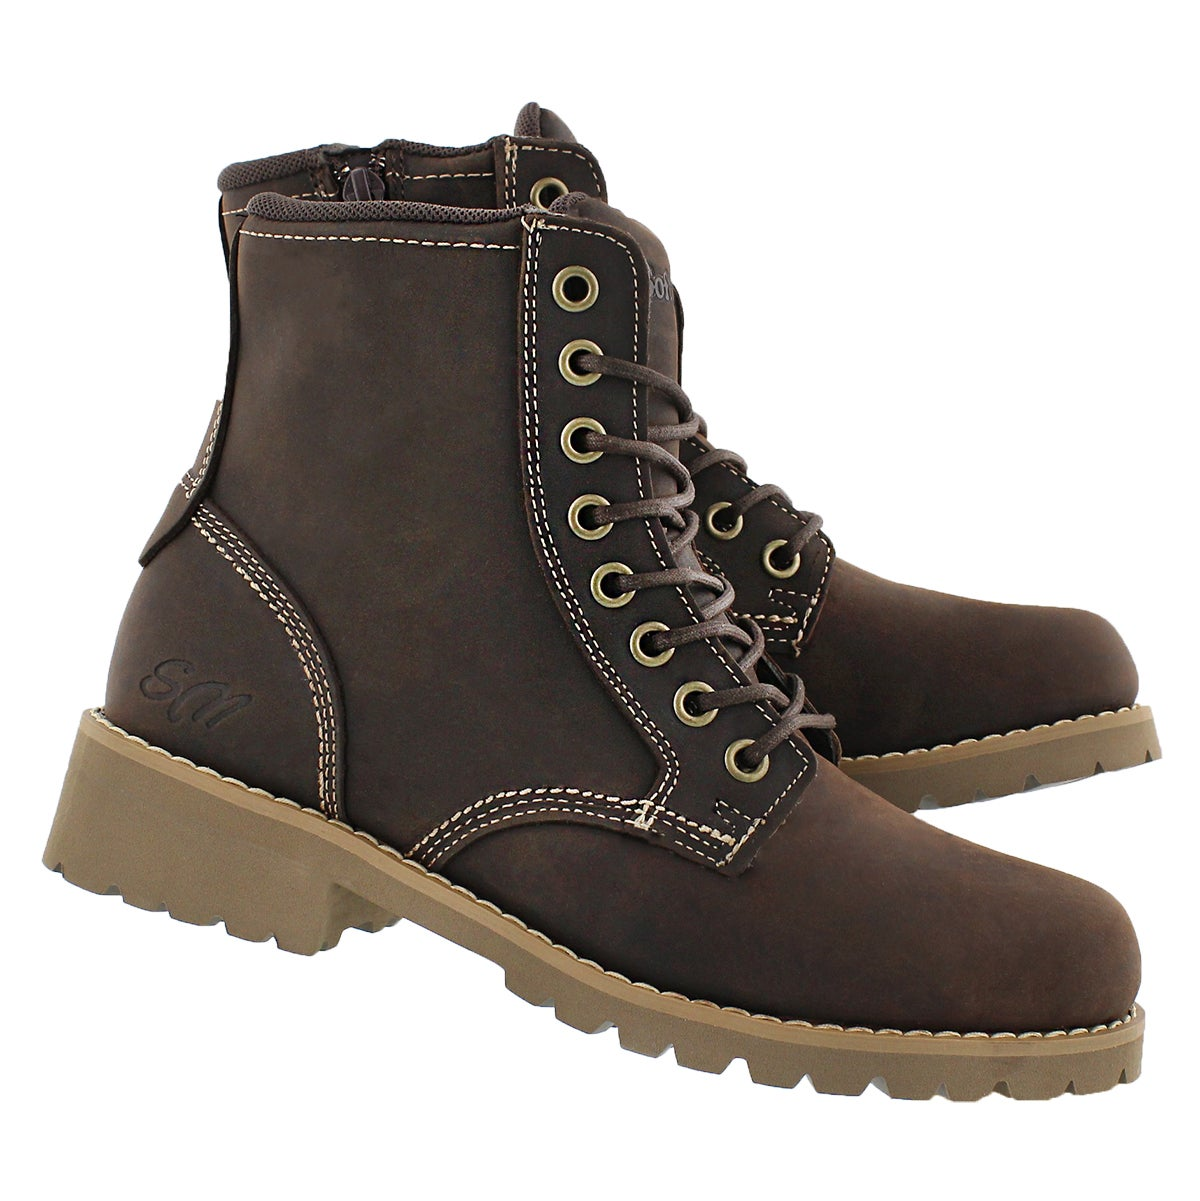 Lds Dalisse dk brn casual combat boot